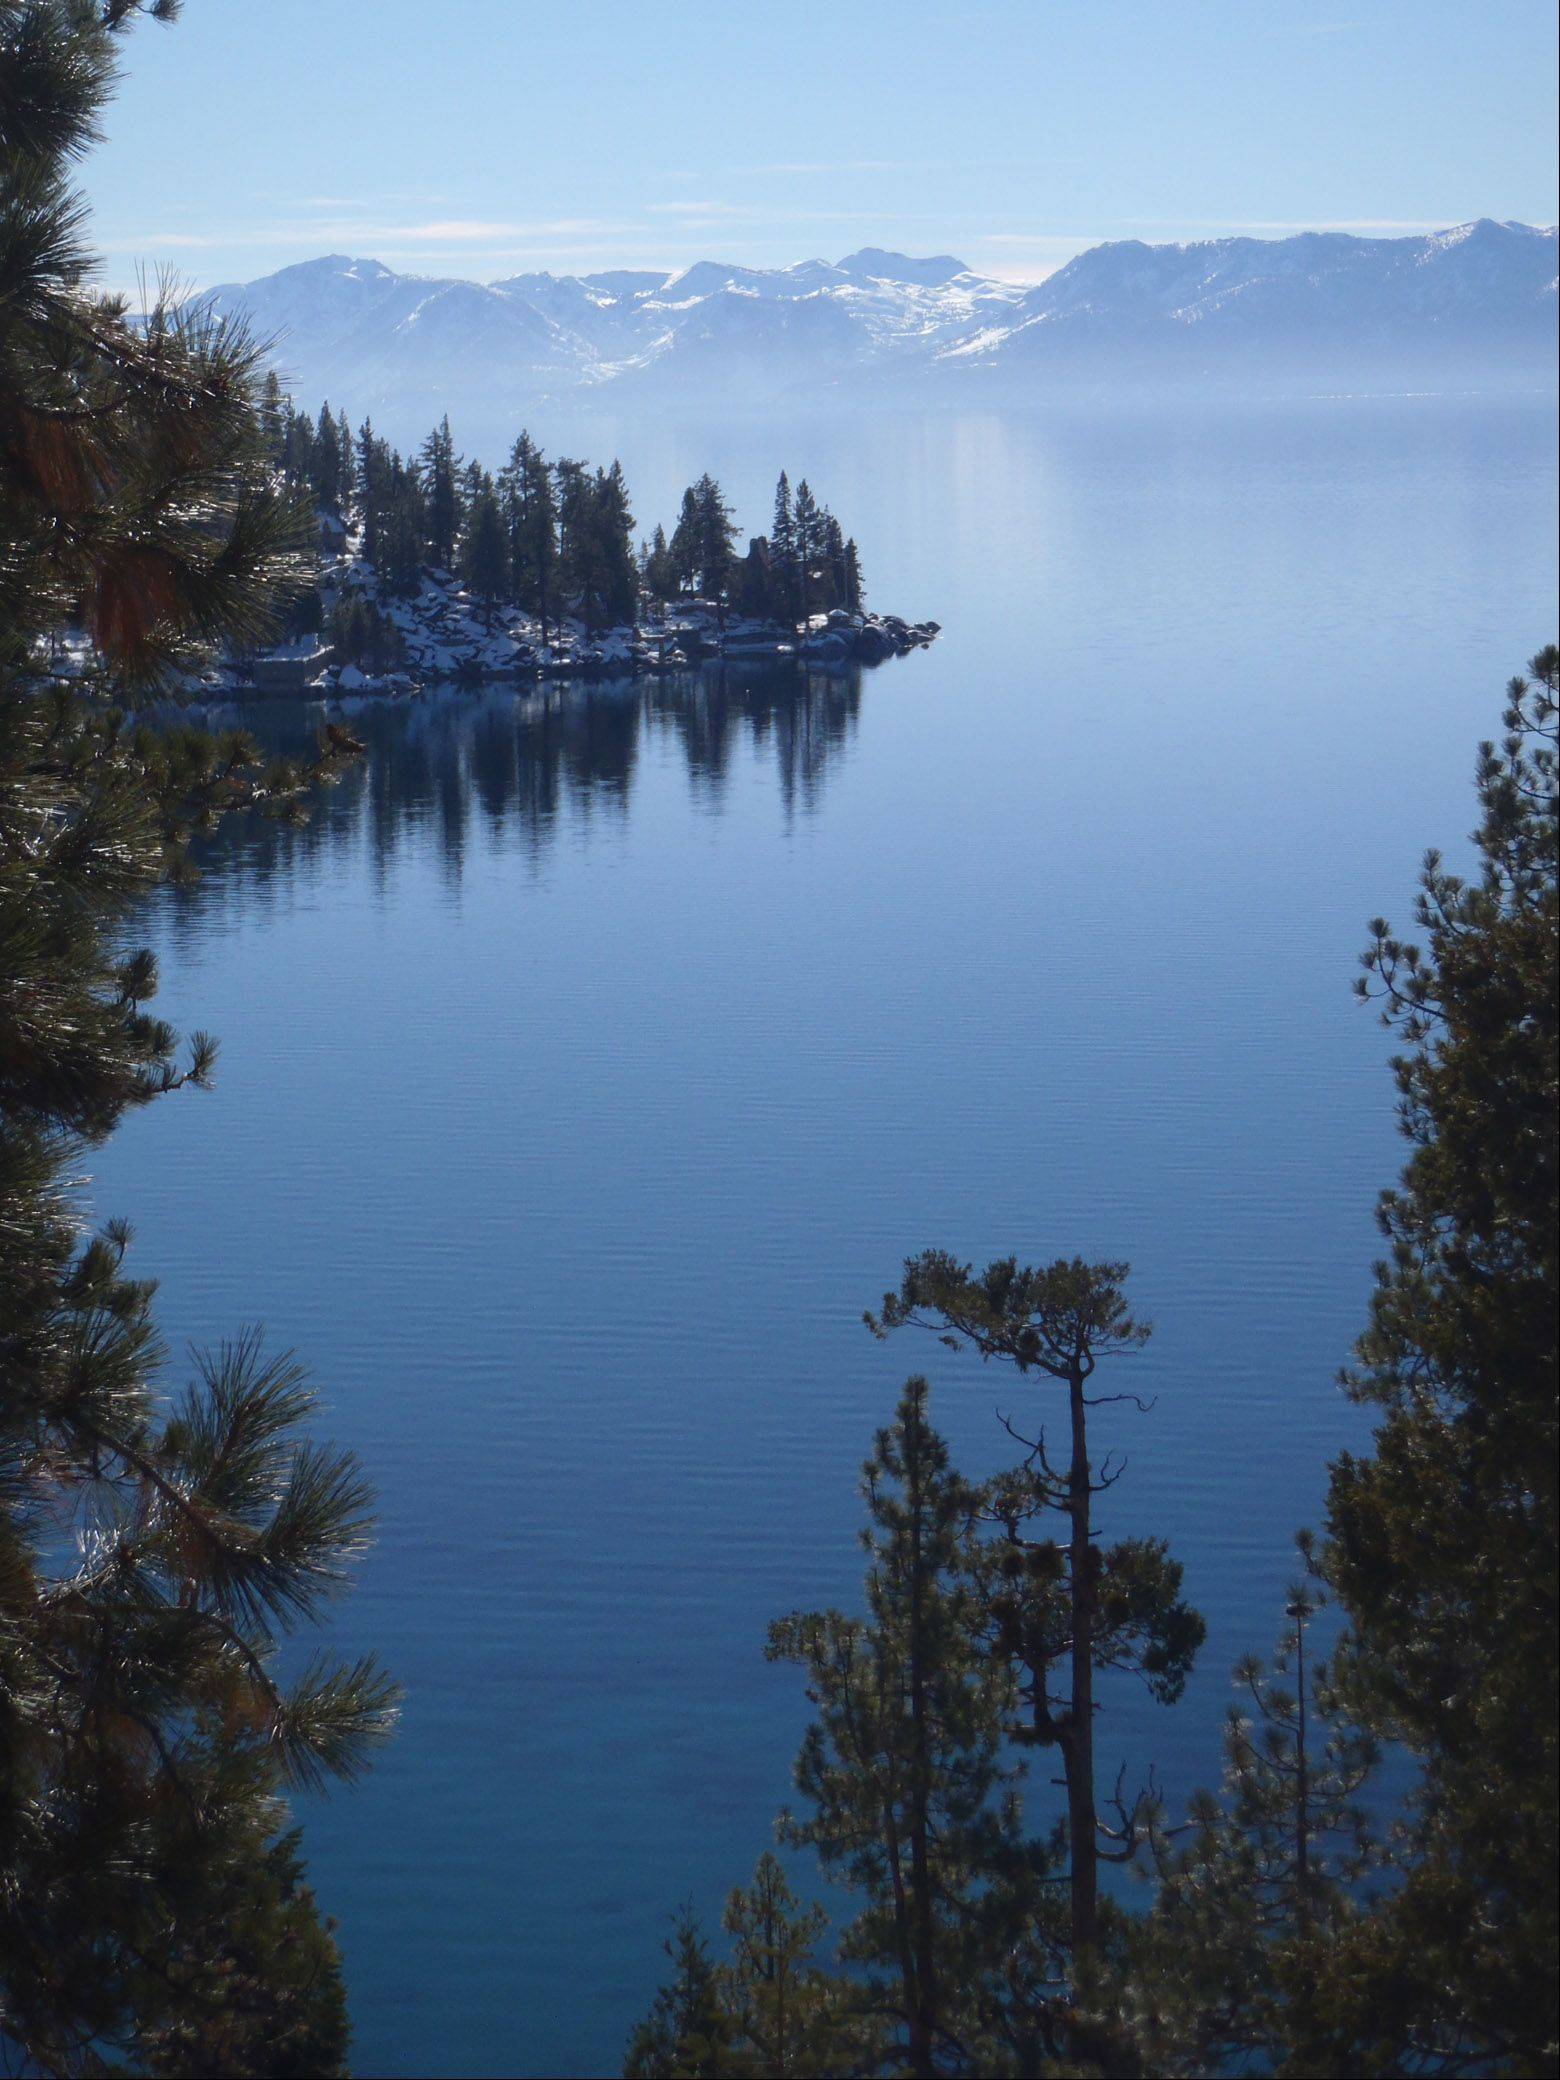 Here is a photo taken in Lake Tahoe, CA. during our annual ski trip this year. It was a beautiful day and we stopped at Emerald Bay while on a sight seeing drive around the lake.